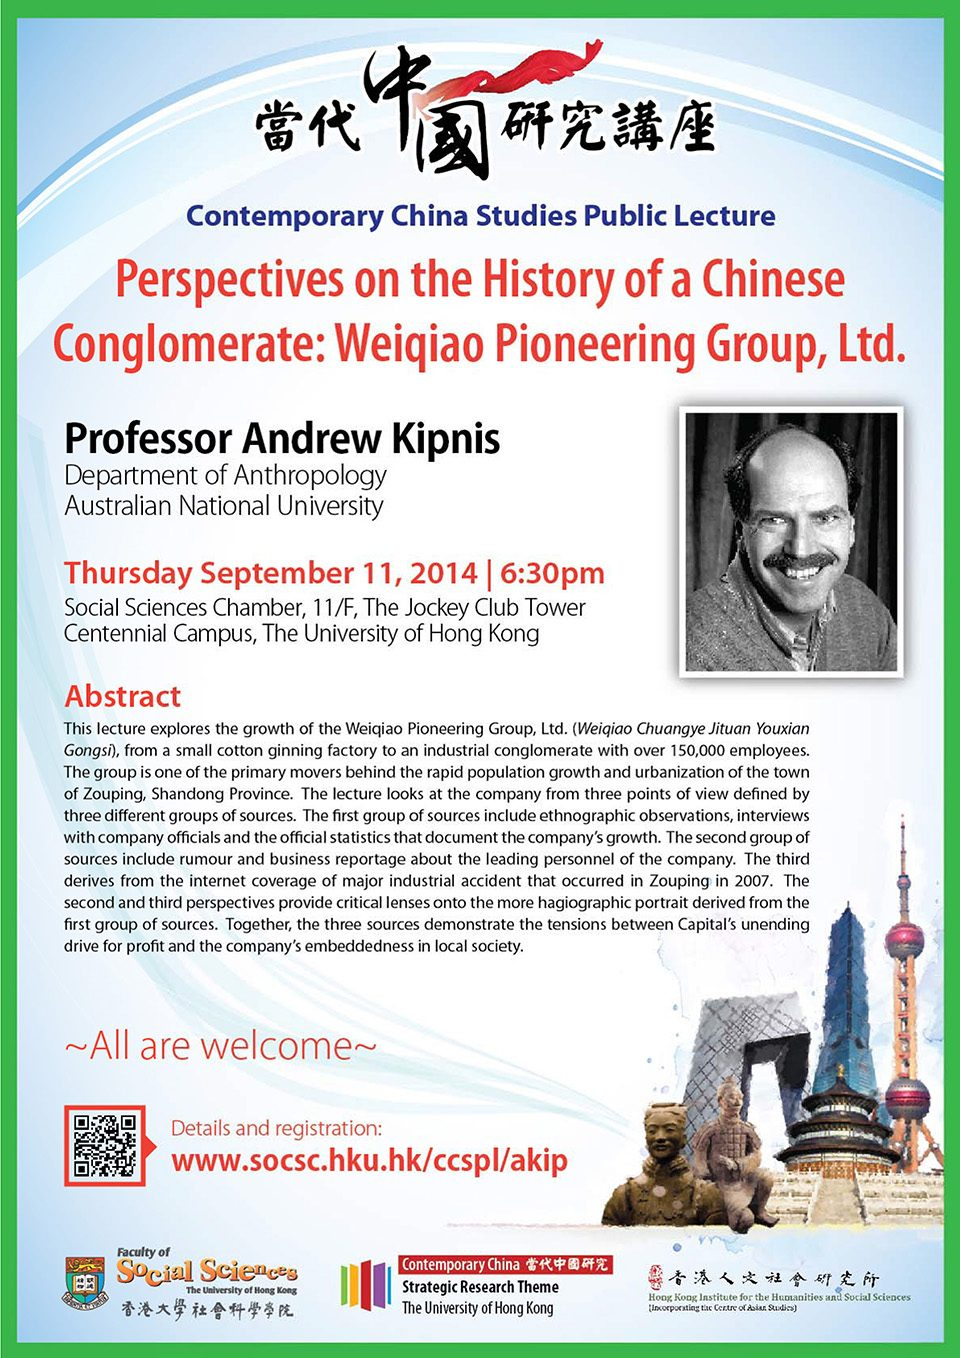 "Contemporary China Studies Public Lecture: ""Perspectives on the History of a Chinese Conglomerate: Weiqiao Pioneering Group, Ltd."" by Professor Andrew Kipnis (September 11, 2014)"